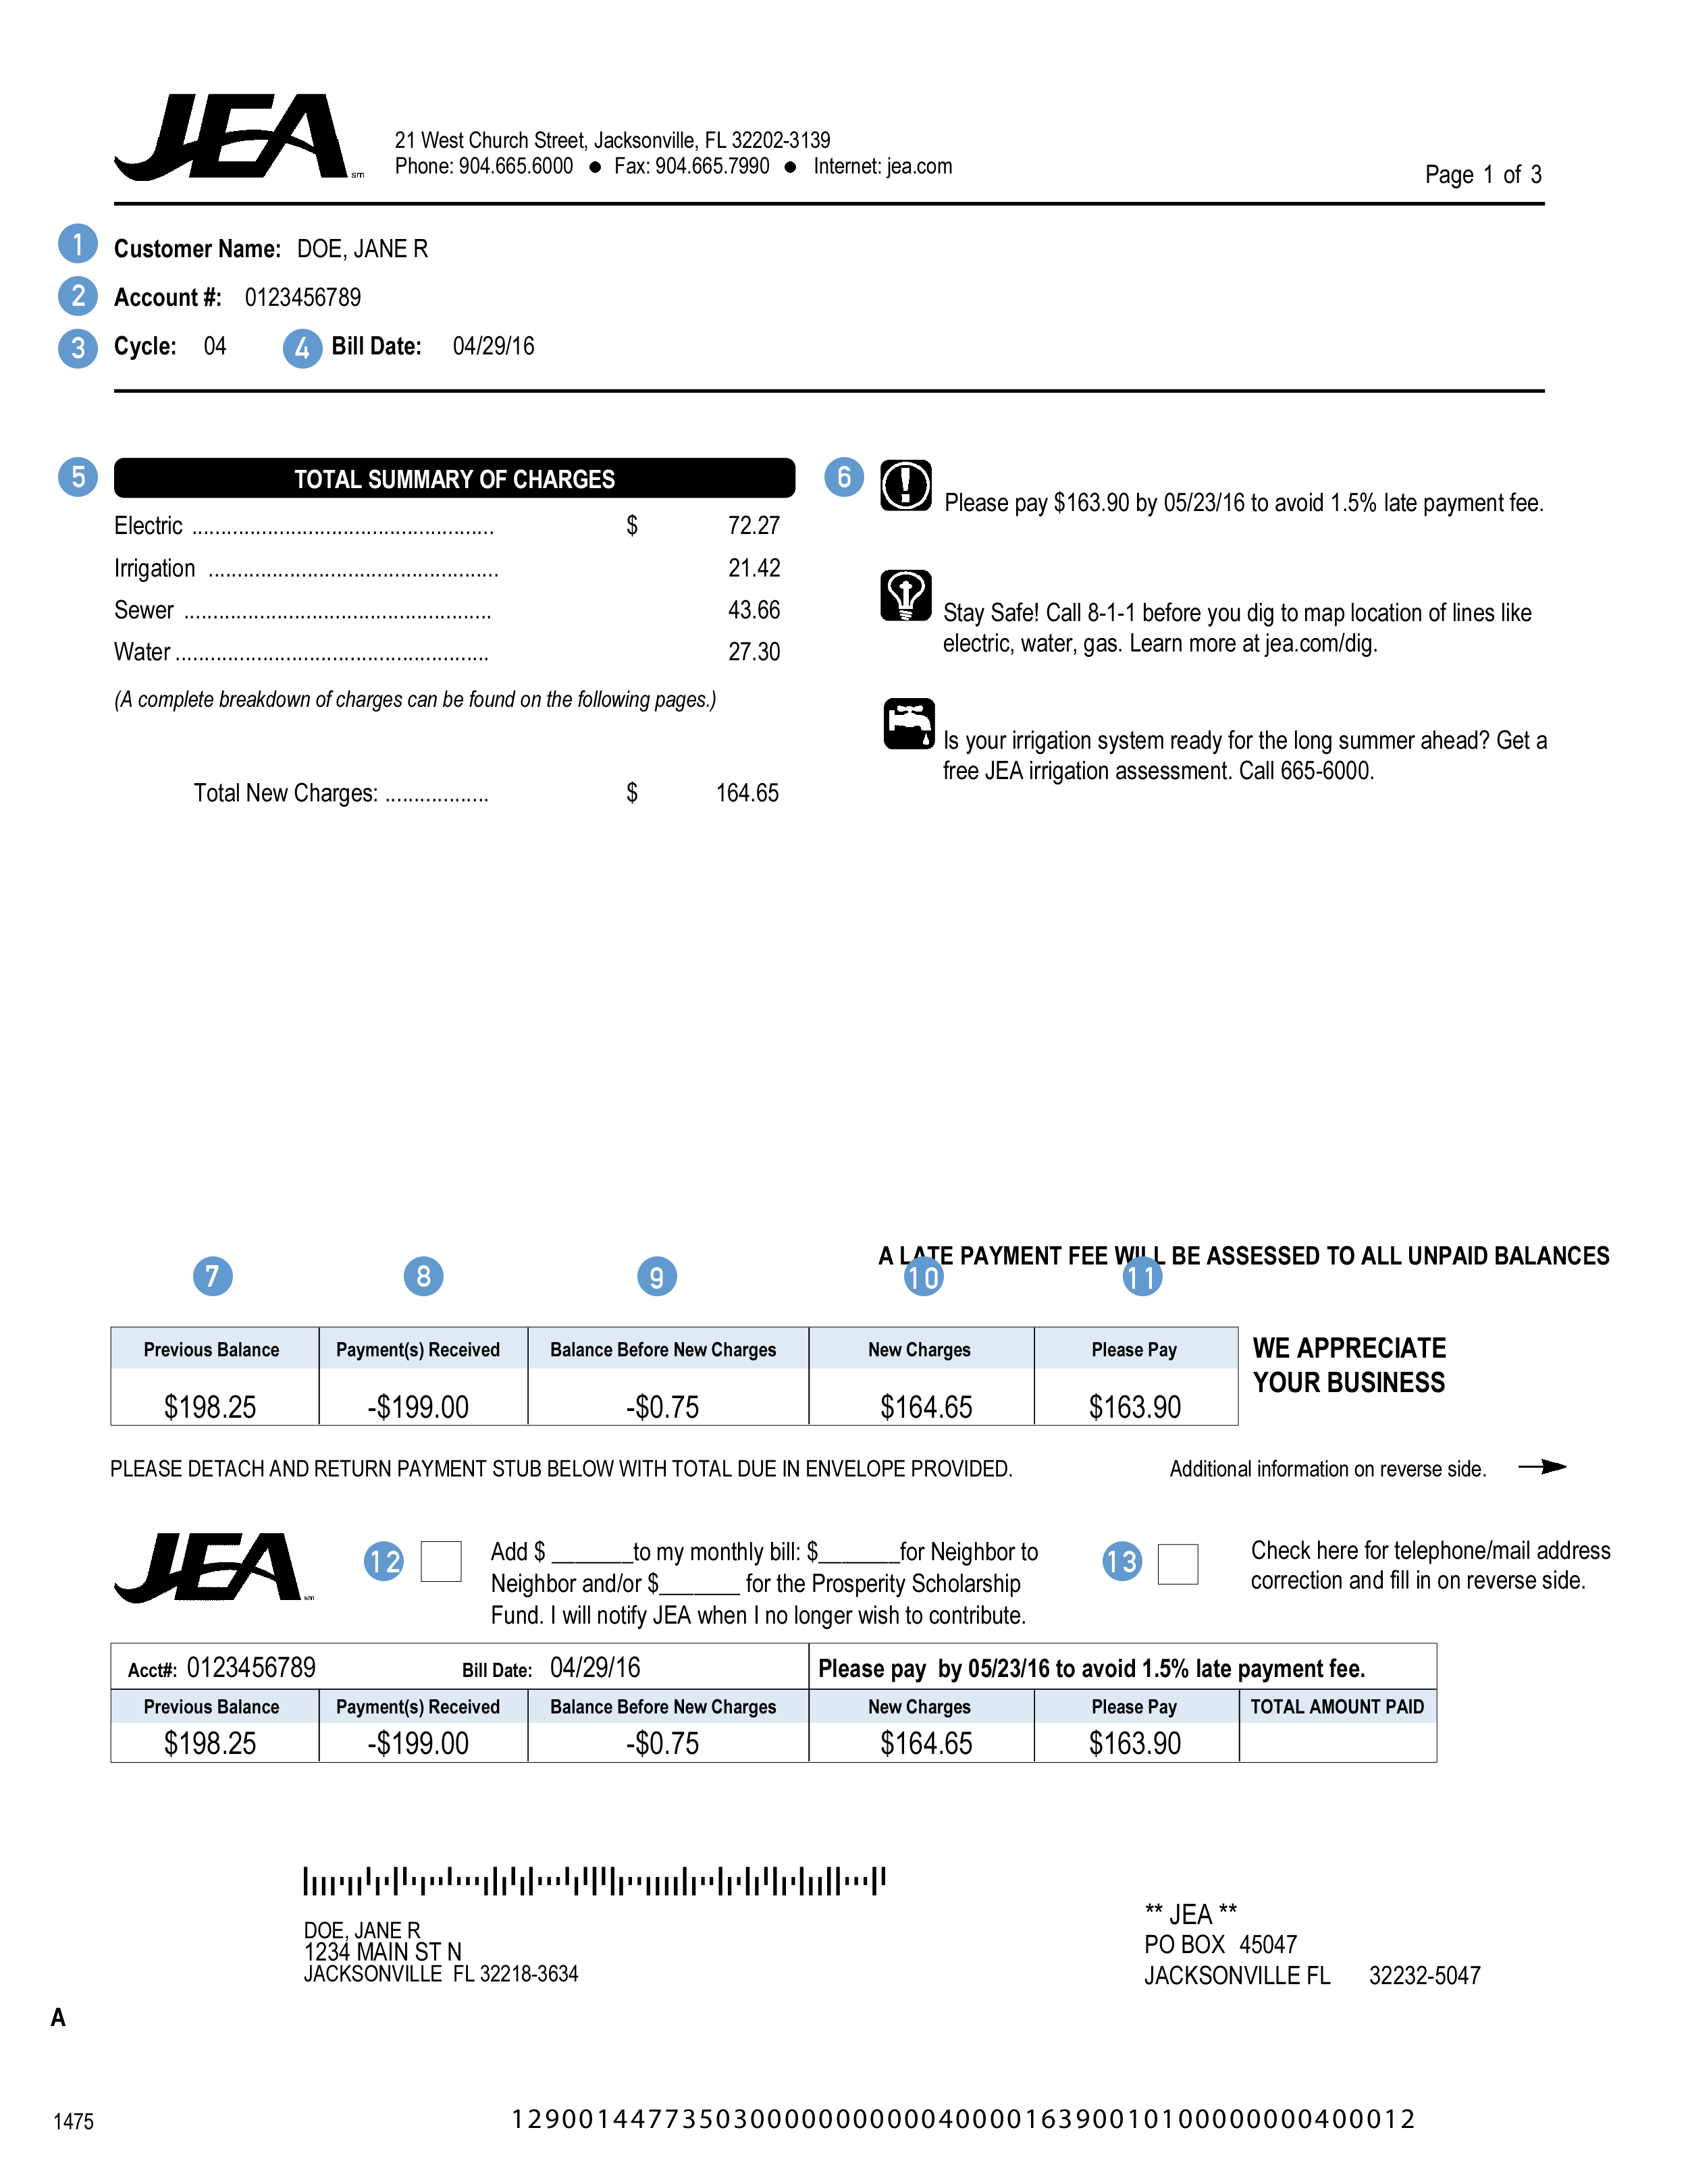 JEA bill page one